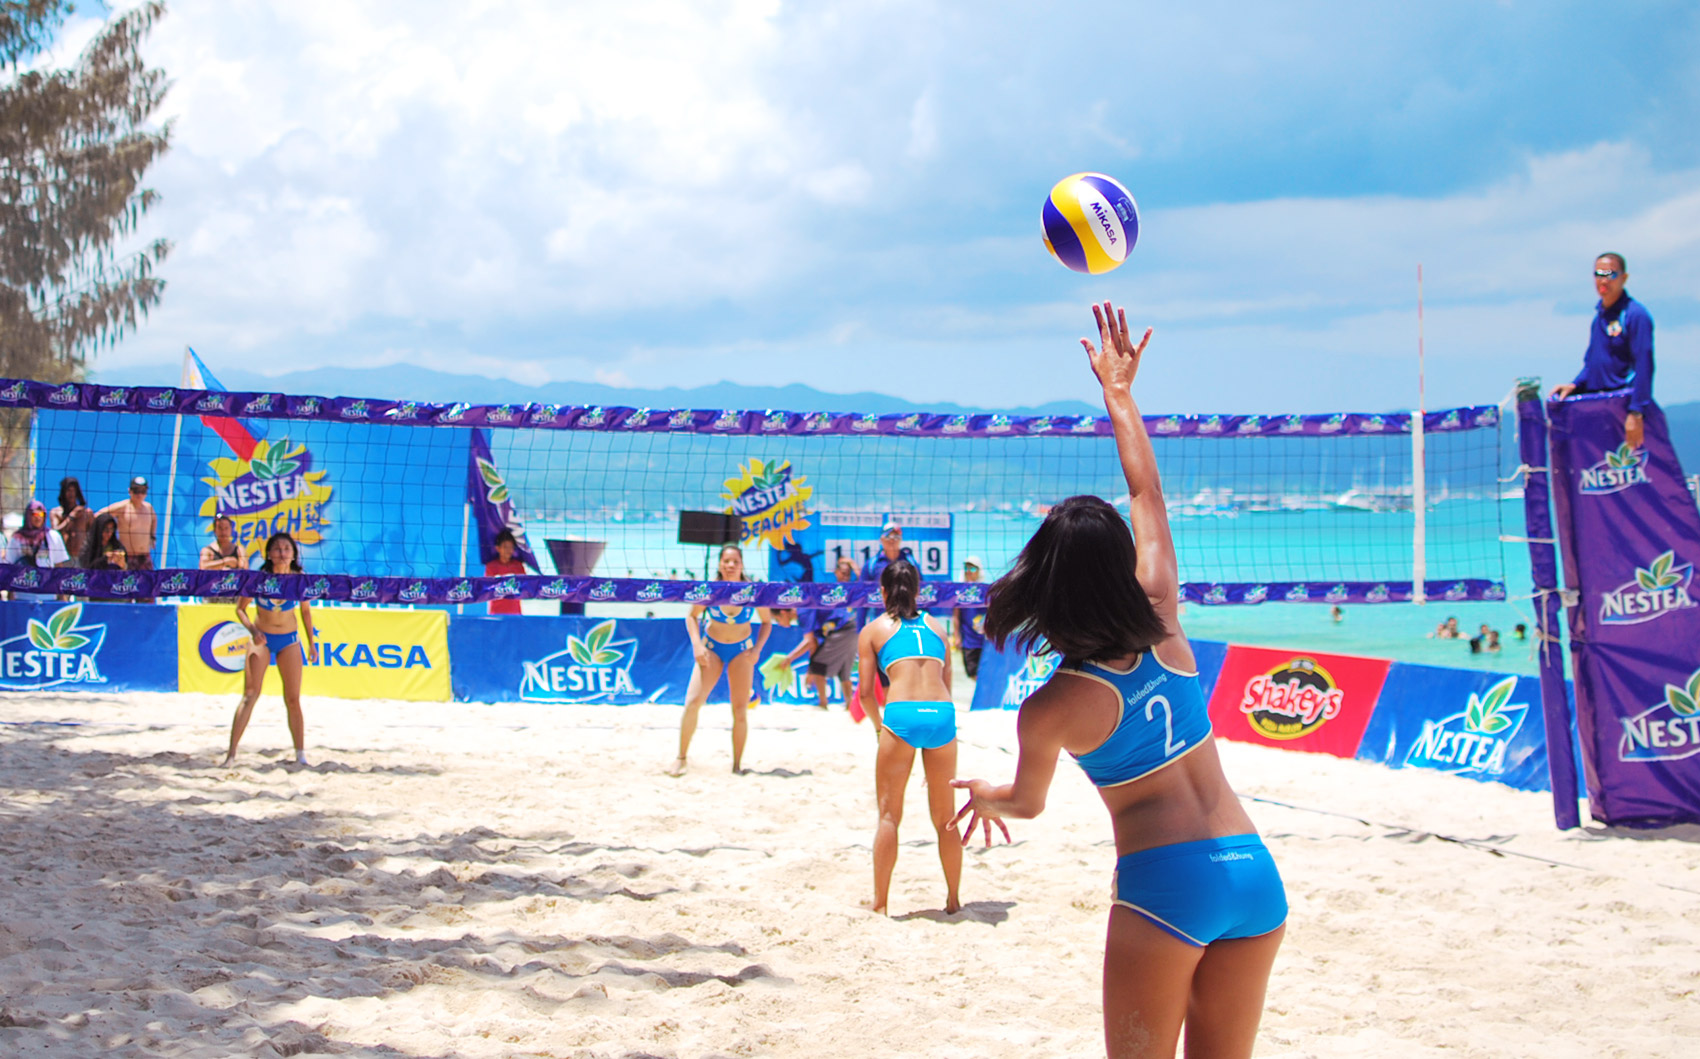 nestea beach volleyball